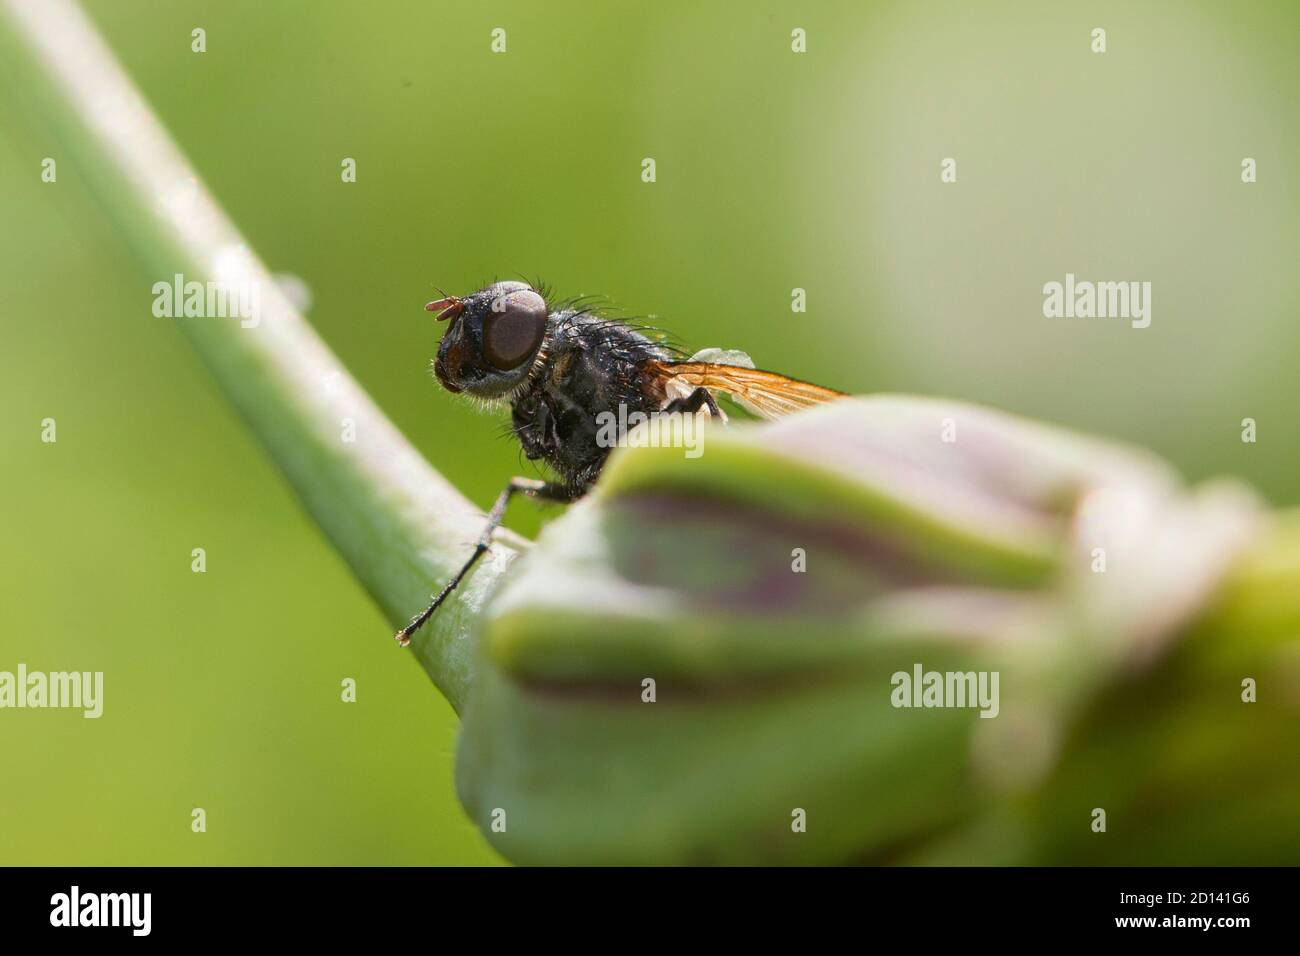 Tachinid fly perched on a green leaf Stock Photo